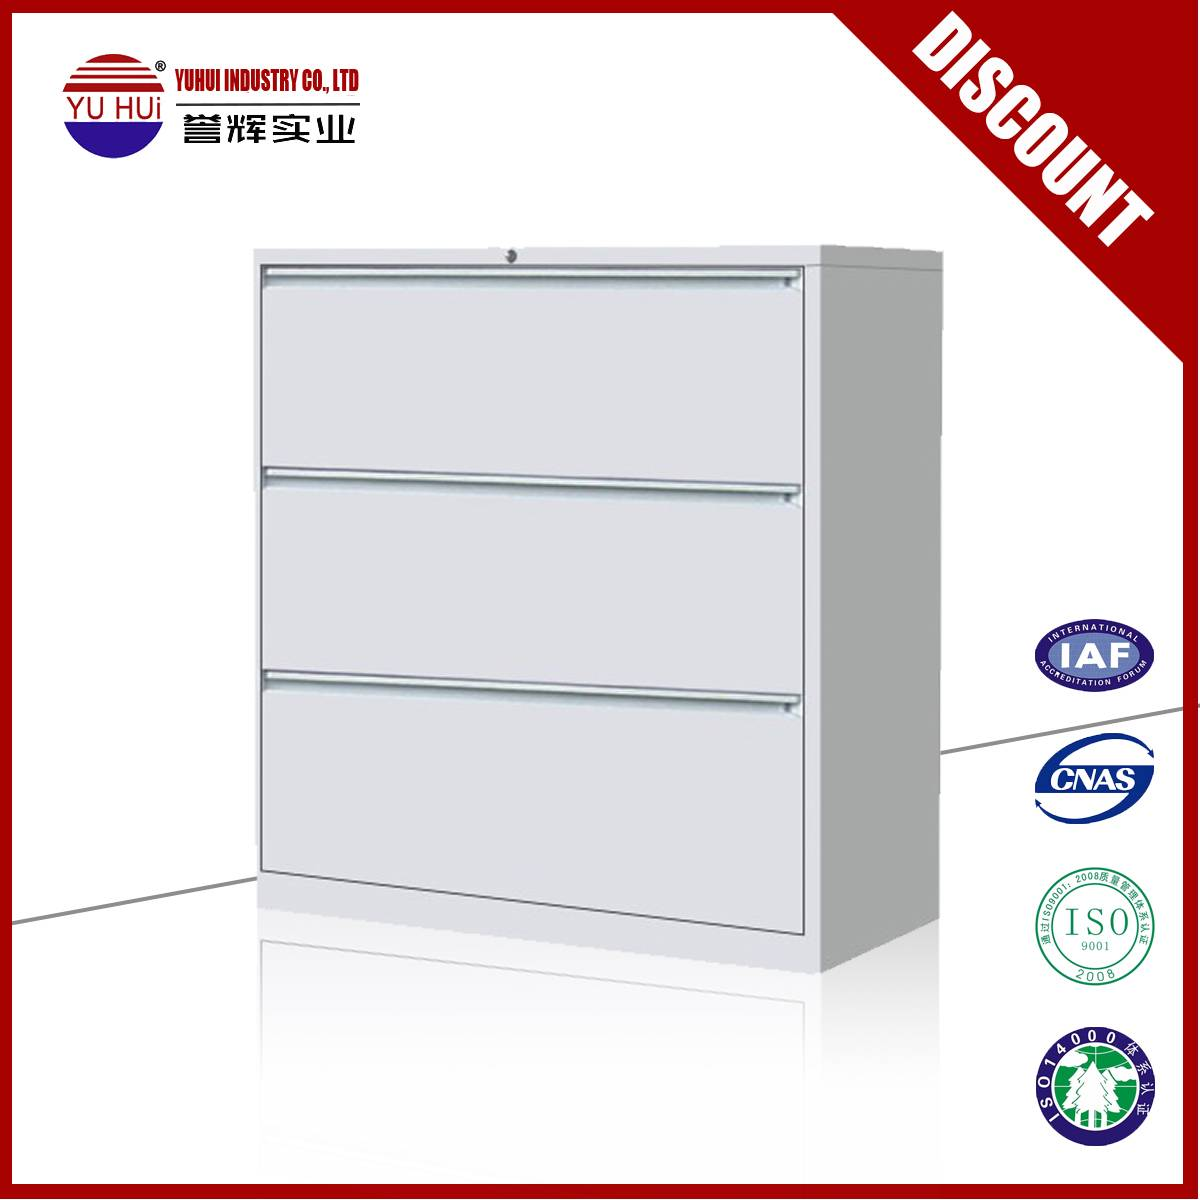 Yuhui hot selling 3 drawer cabinet in whote color